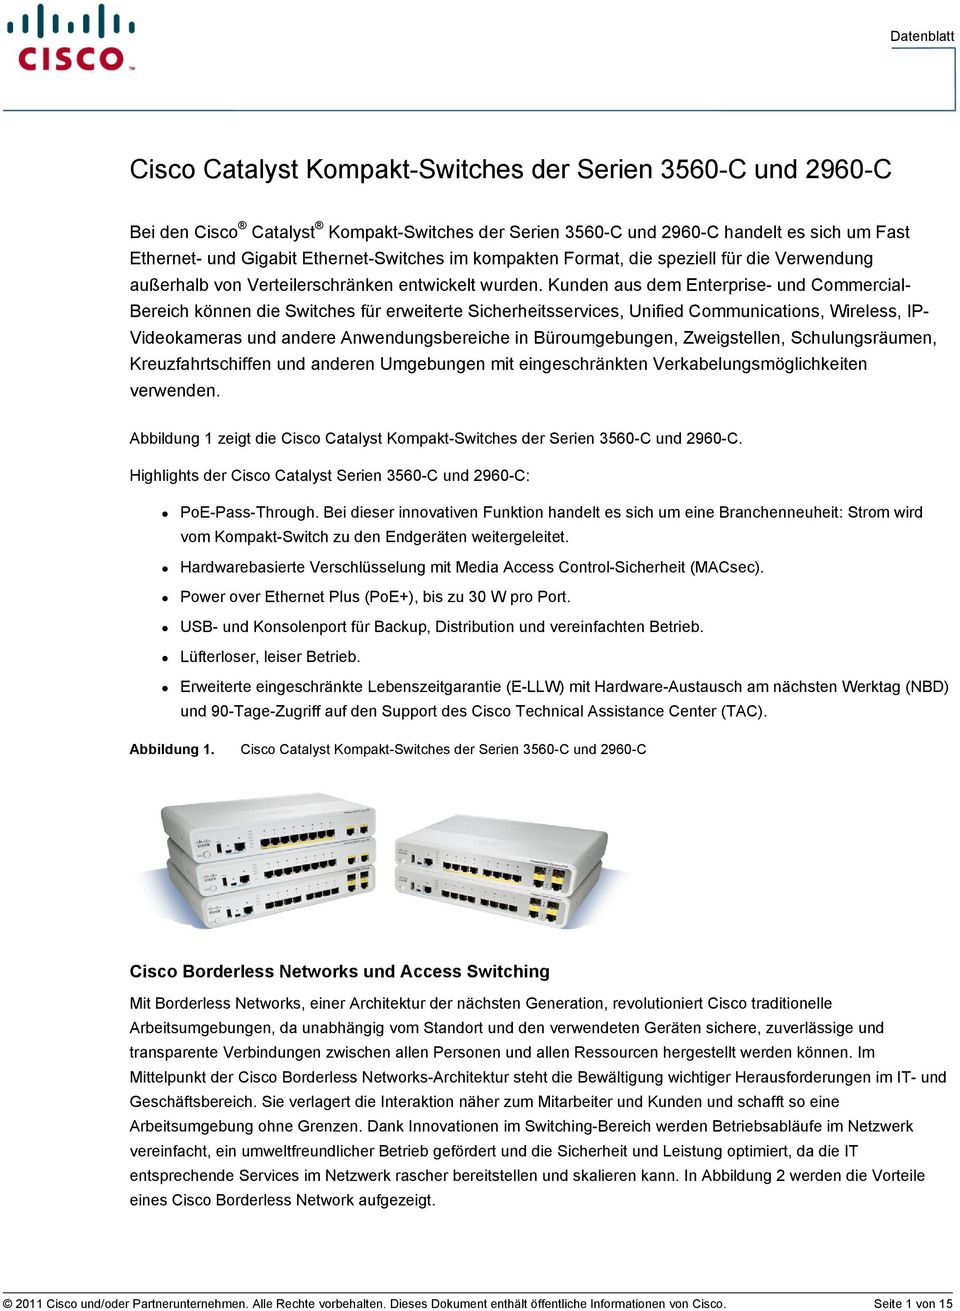 Kunden aus dem Enterprise- und Commercial- Bereich können die Switches für erweiterte Sicherheitsservices, Unified Communications, Wireless, IP- Videokameras und andere Anwendungsbereiche in